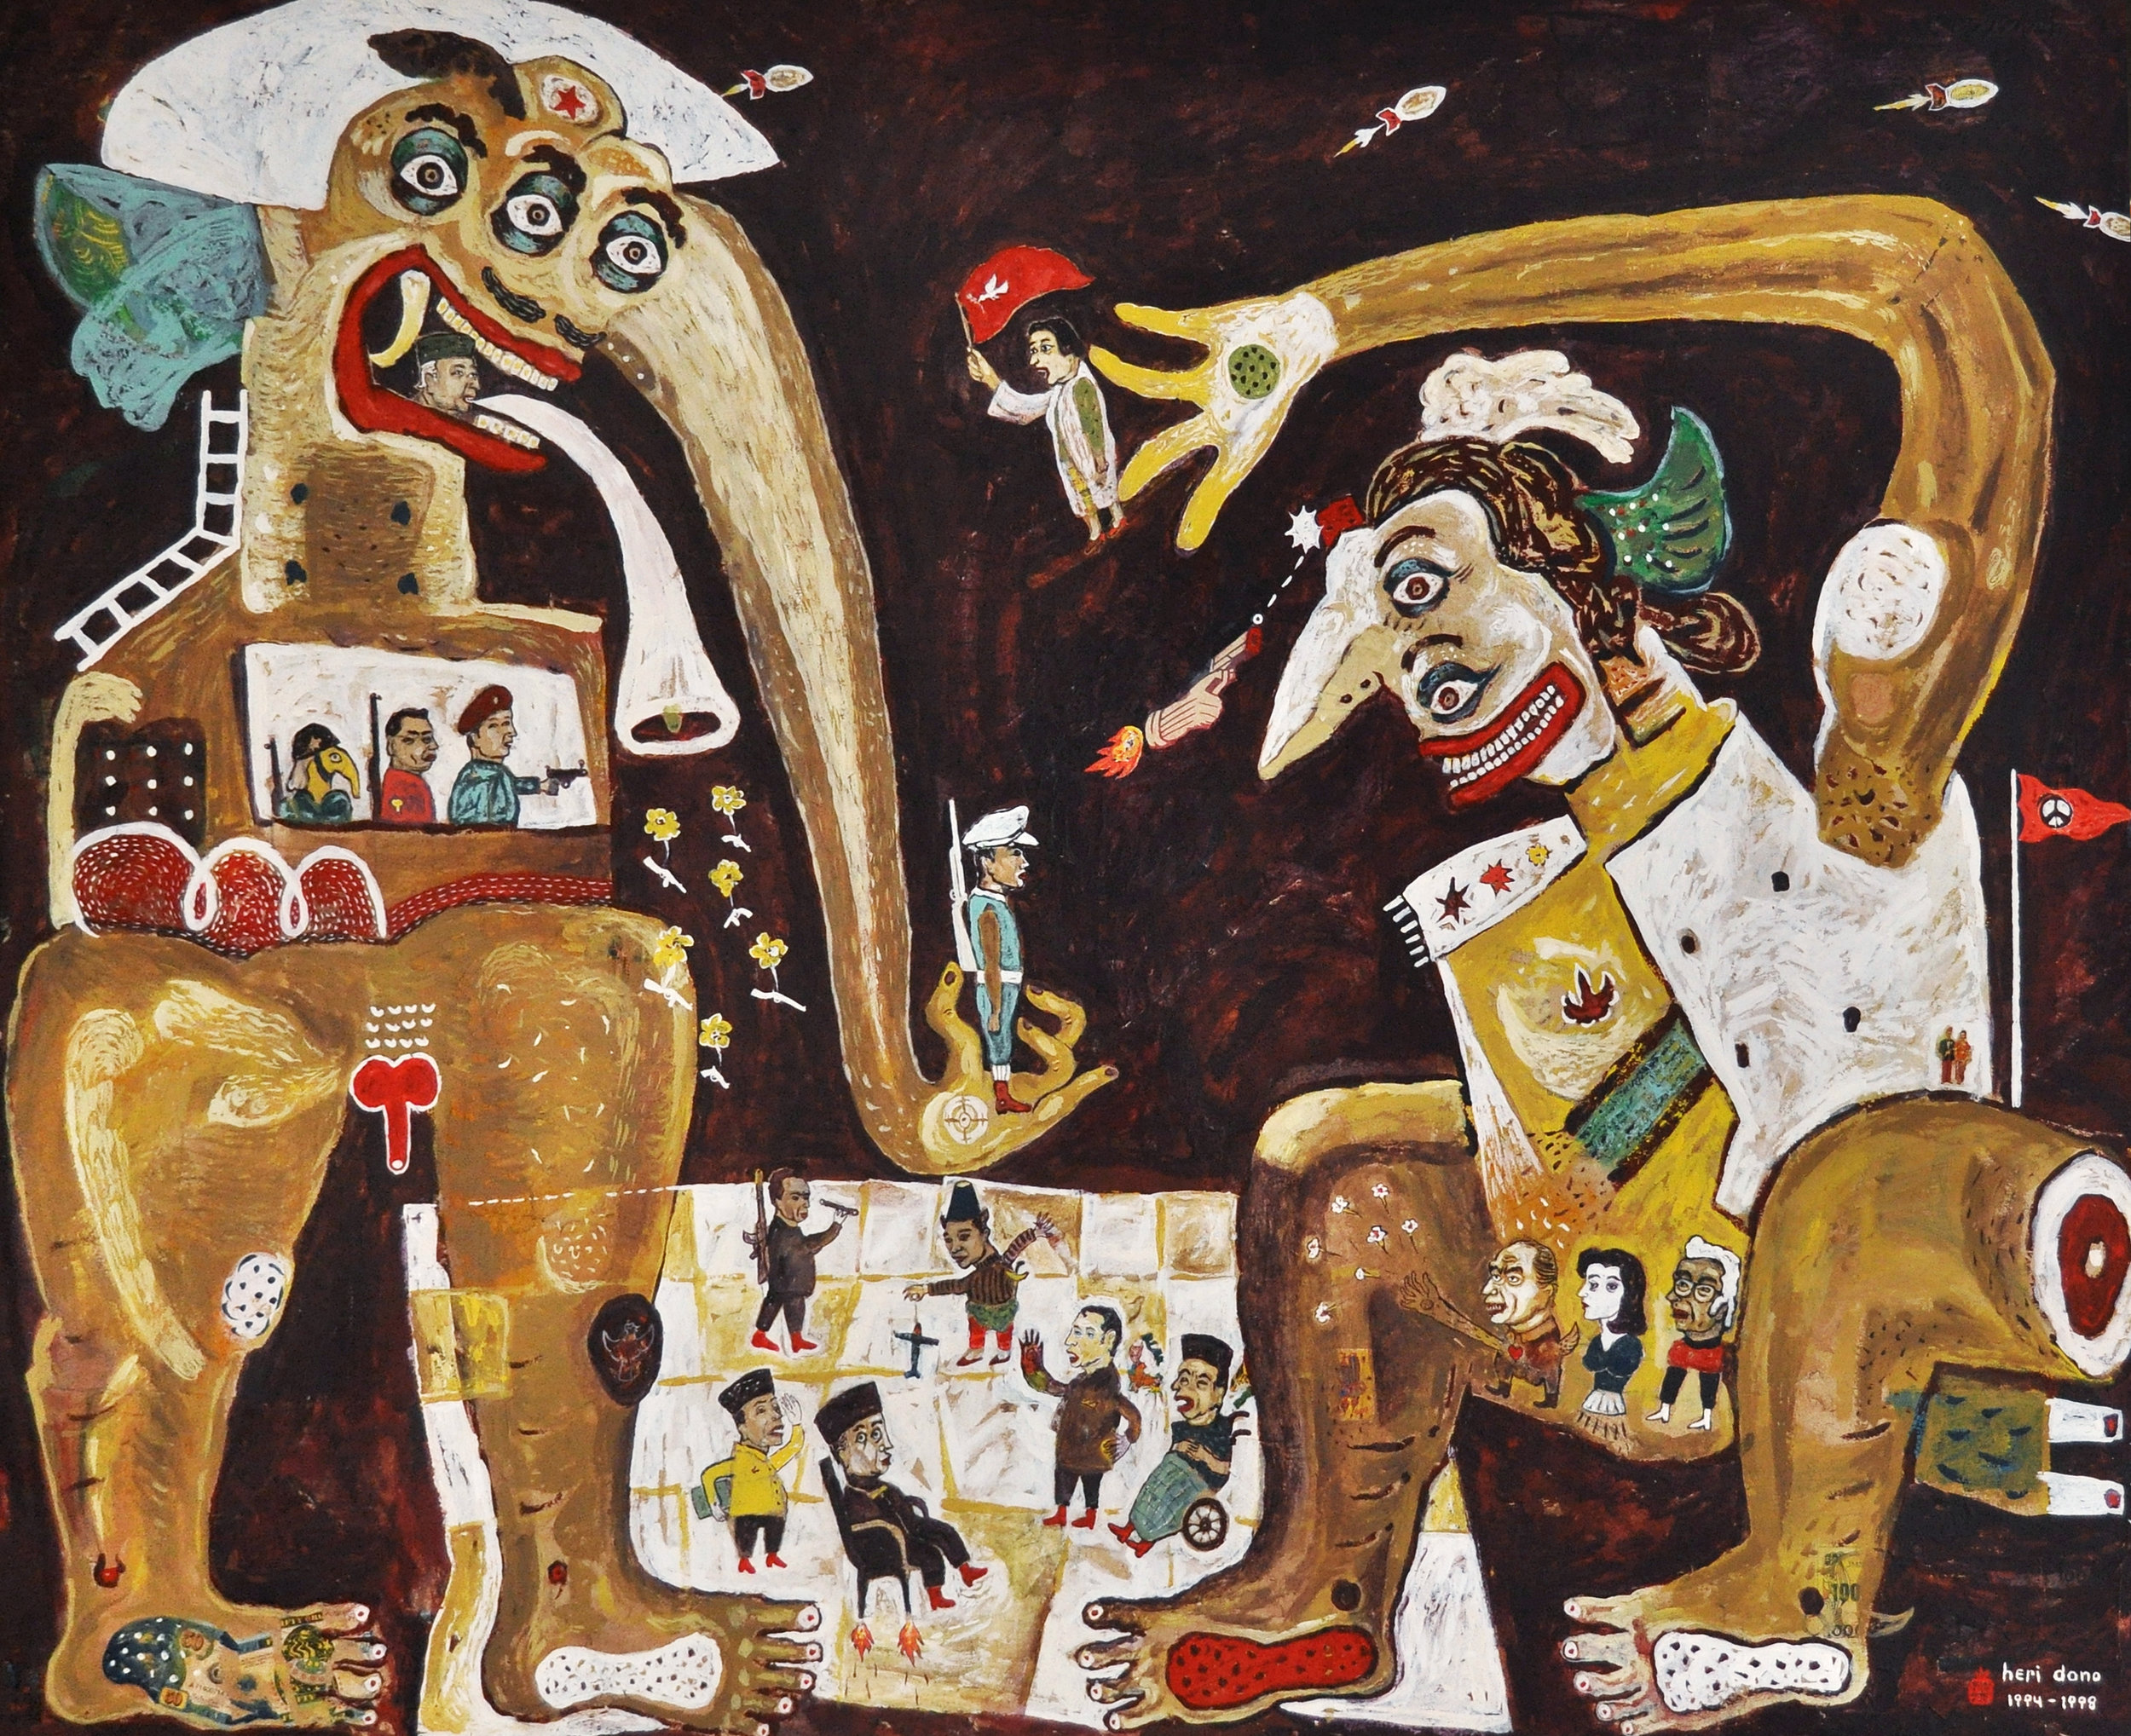 Heri Dono, 'Bermain Catur', 1994-1998, acrylic and collage on canvas, 200 x 150cm. Image courtesy of MACAN.